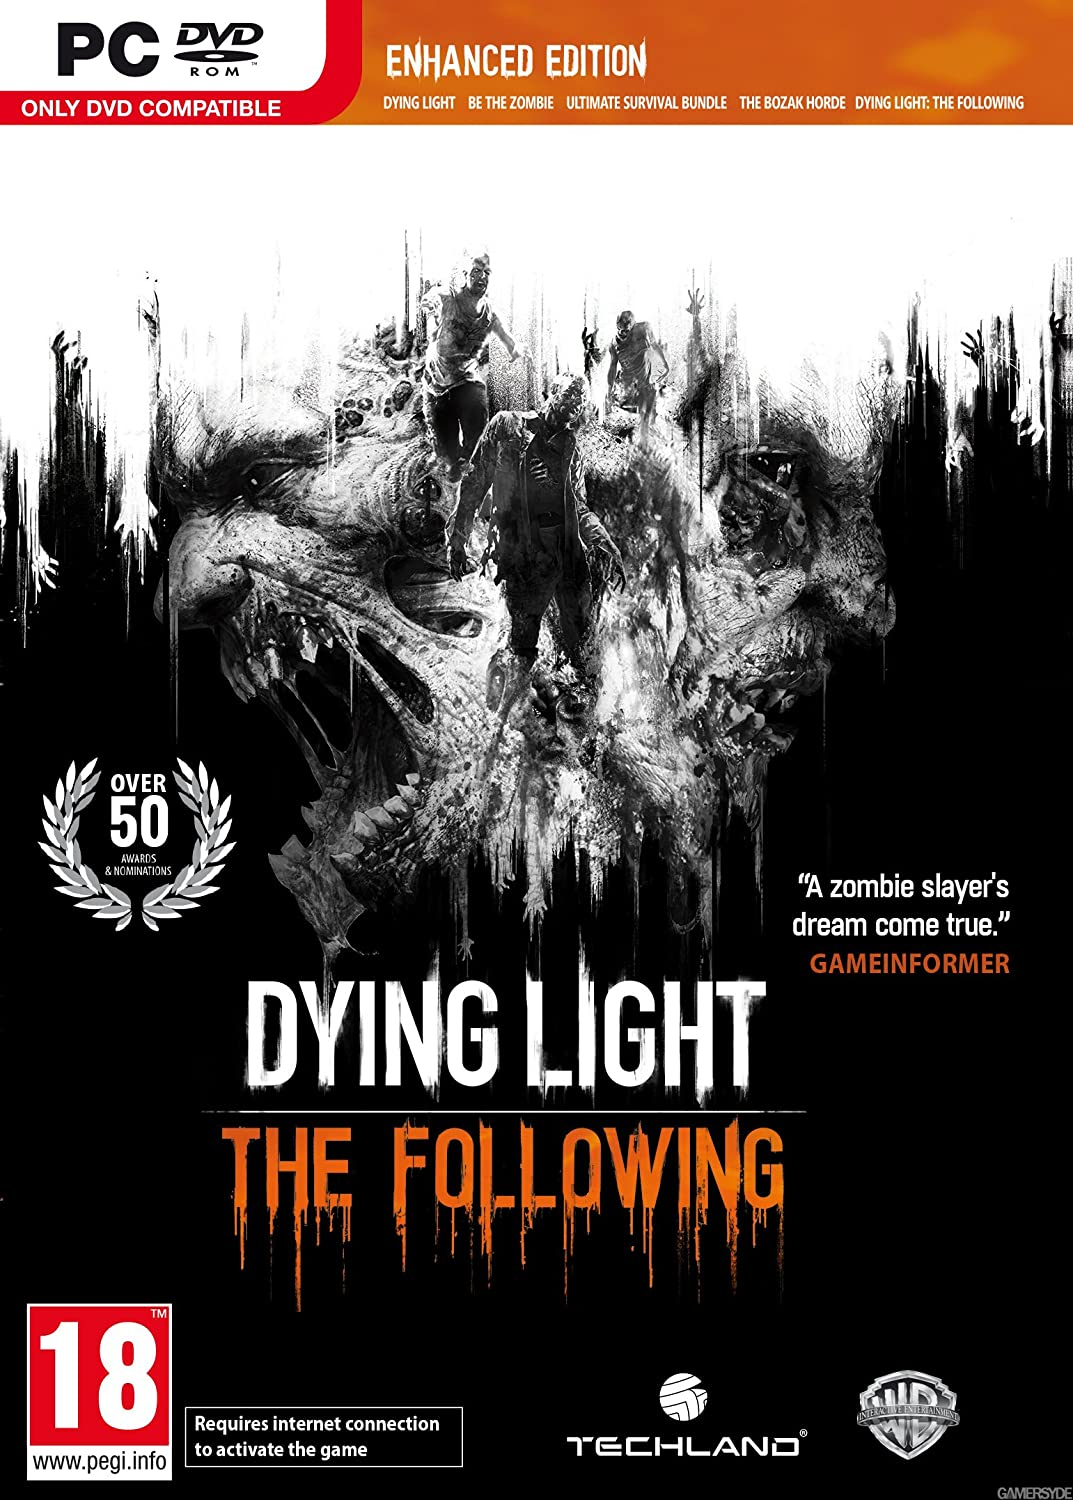 Buy Dying Light   Enhanced Edition (PS4) Online At Low Prices In India |  Warner Brothers Video Games   Amazon.in